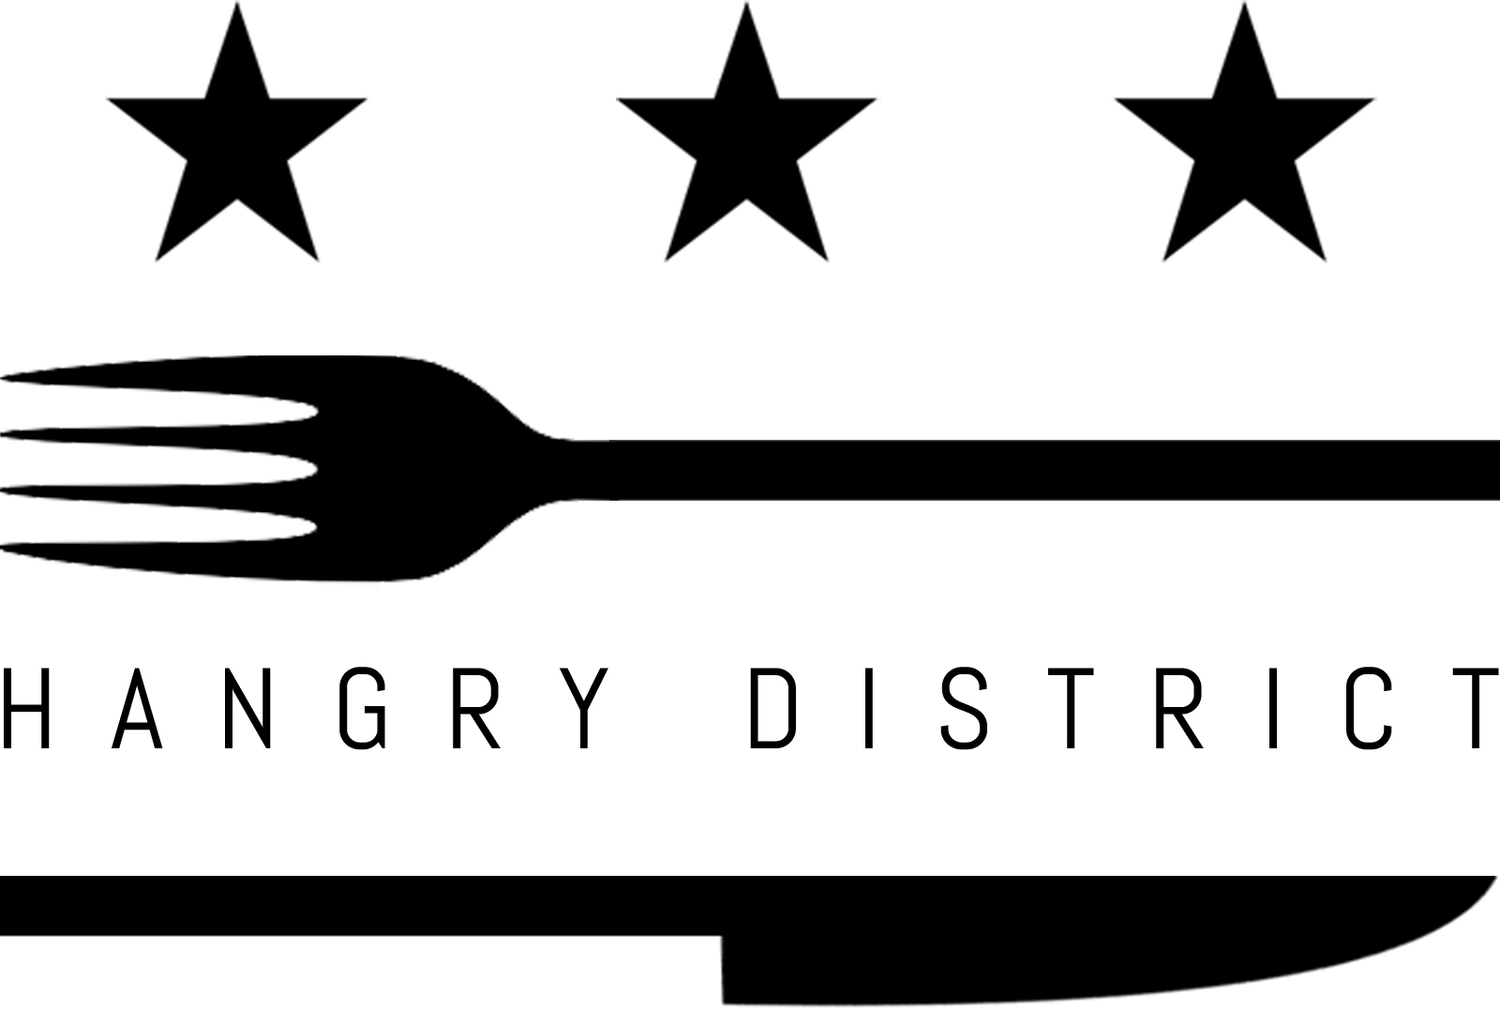 Hangry District